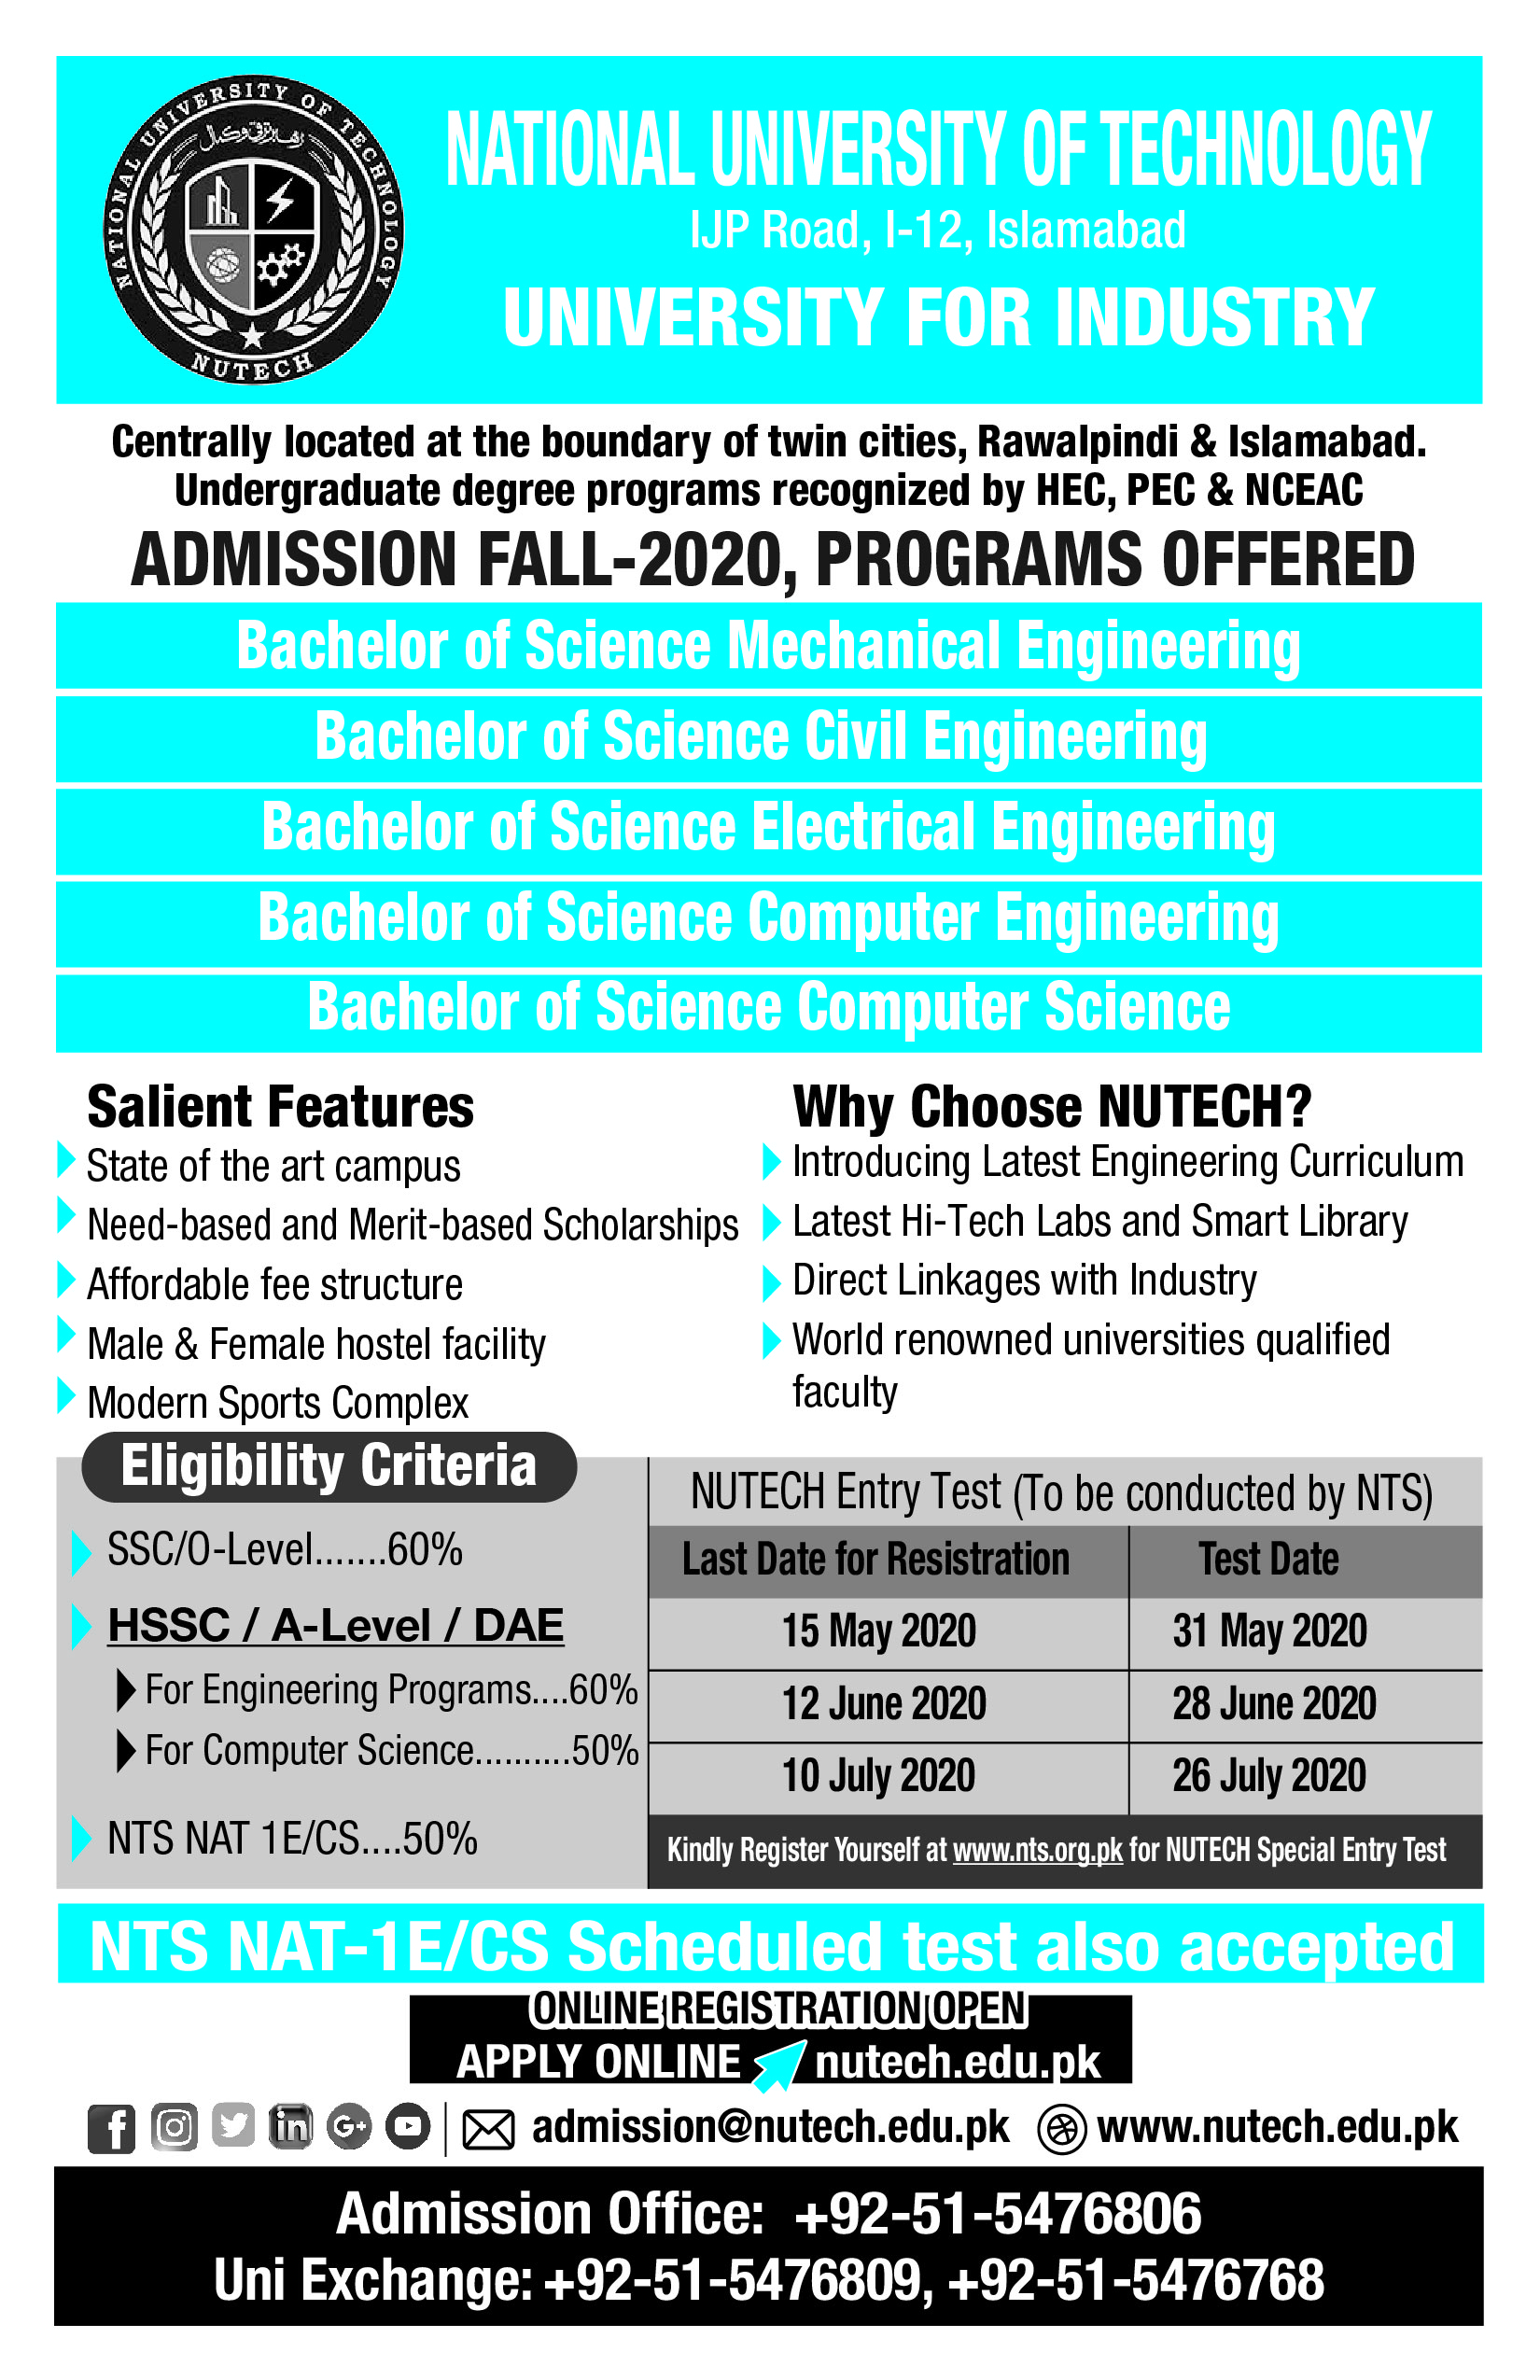 NUTECH National University of Technology Admissions 2020 NTS Roll No Slip